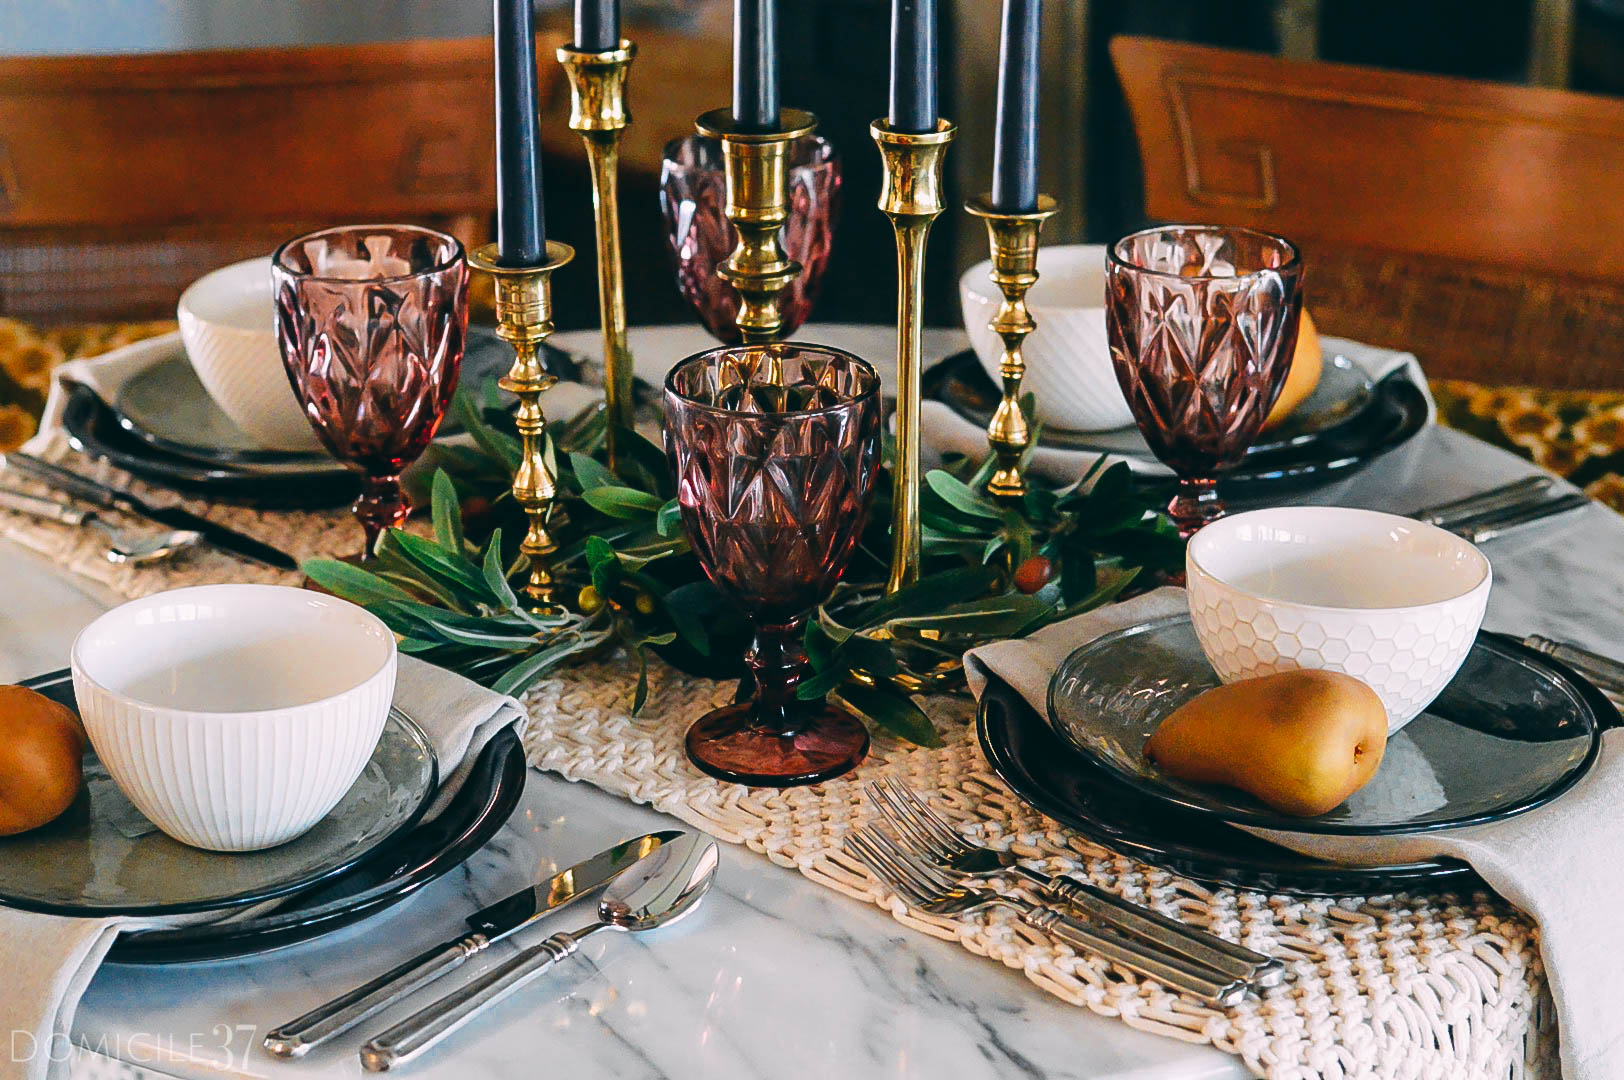 Medieval table setting | Medieval tablescape ideas | Fall Harvest Tablescape | Entertaining Ideas | World Market dinnerware